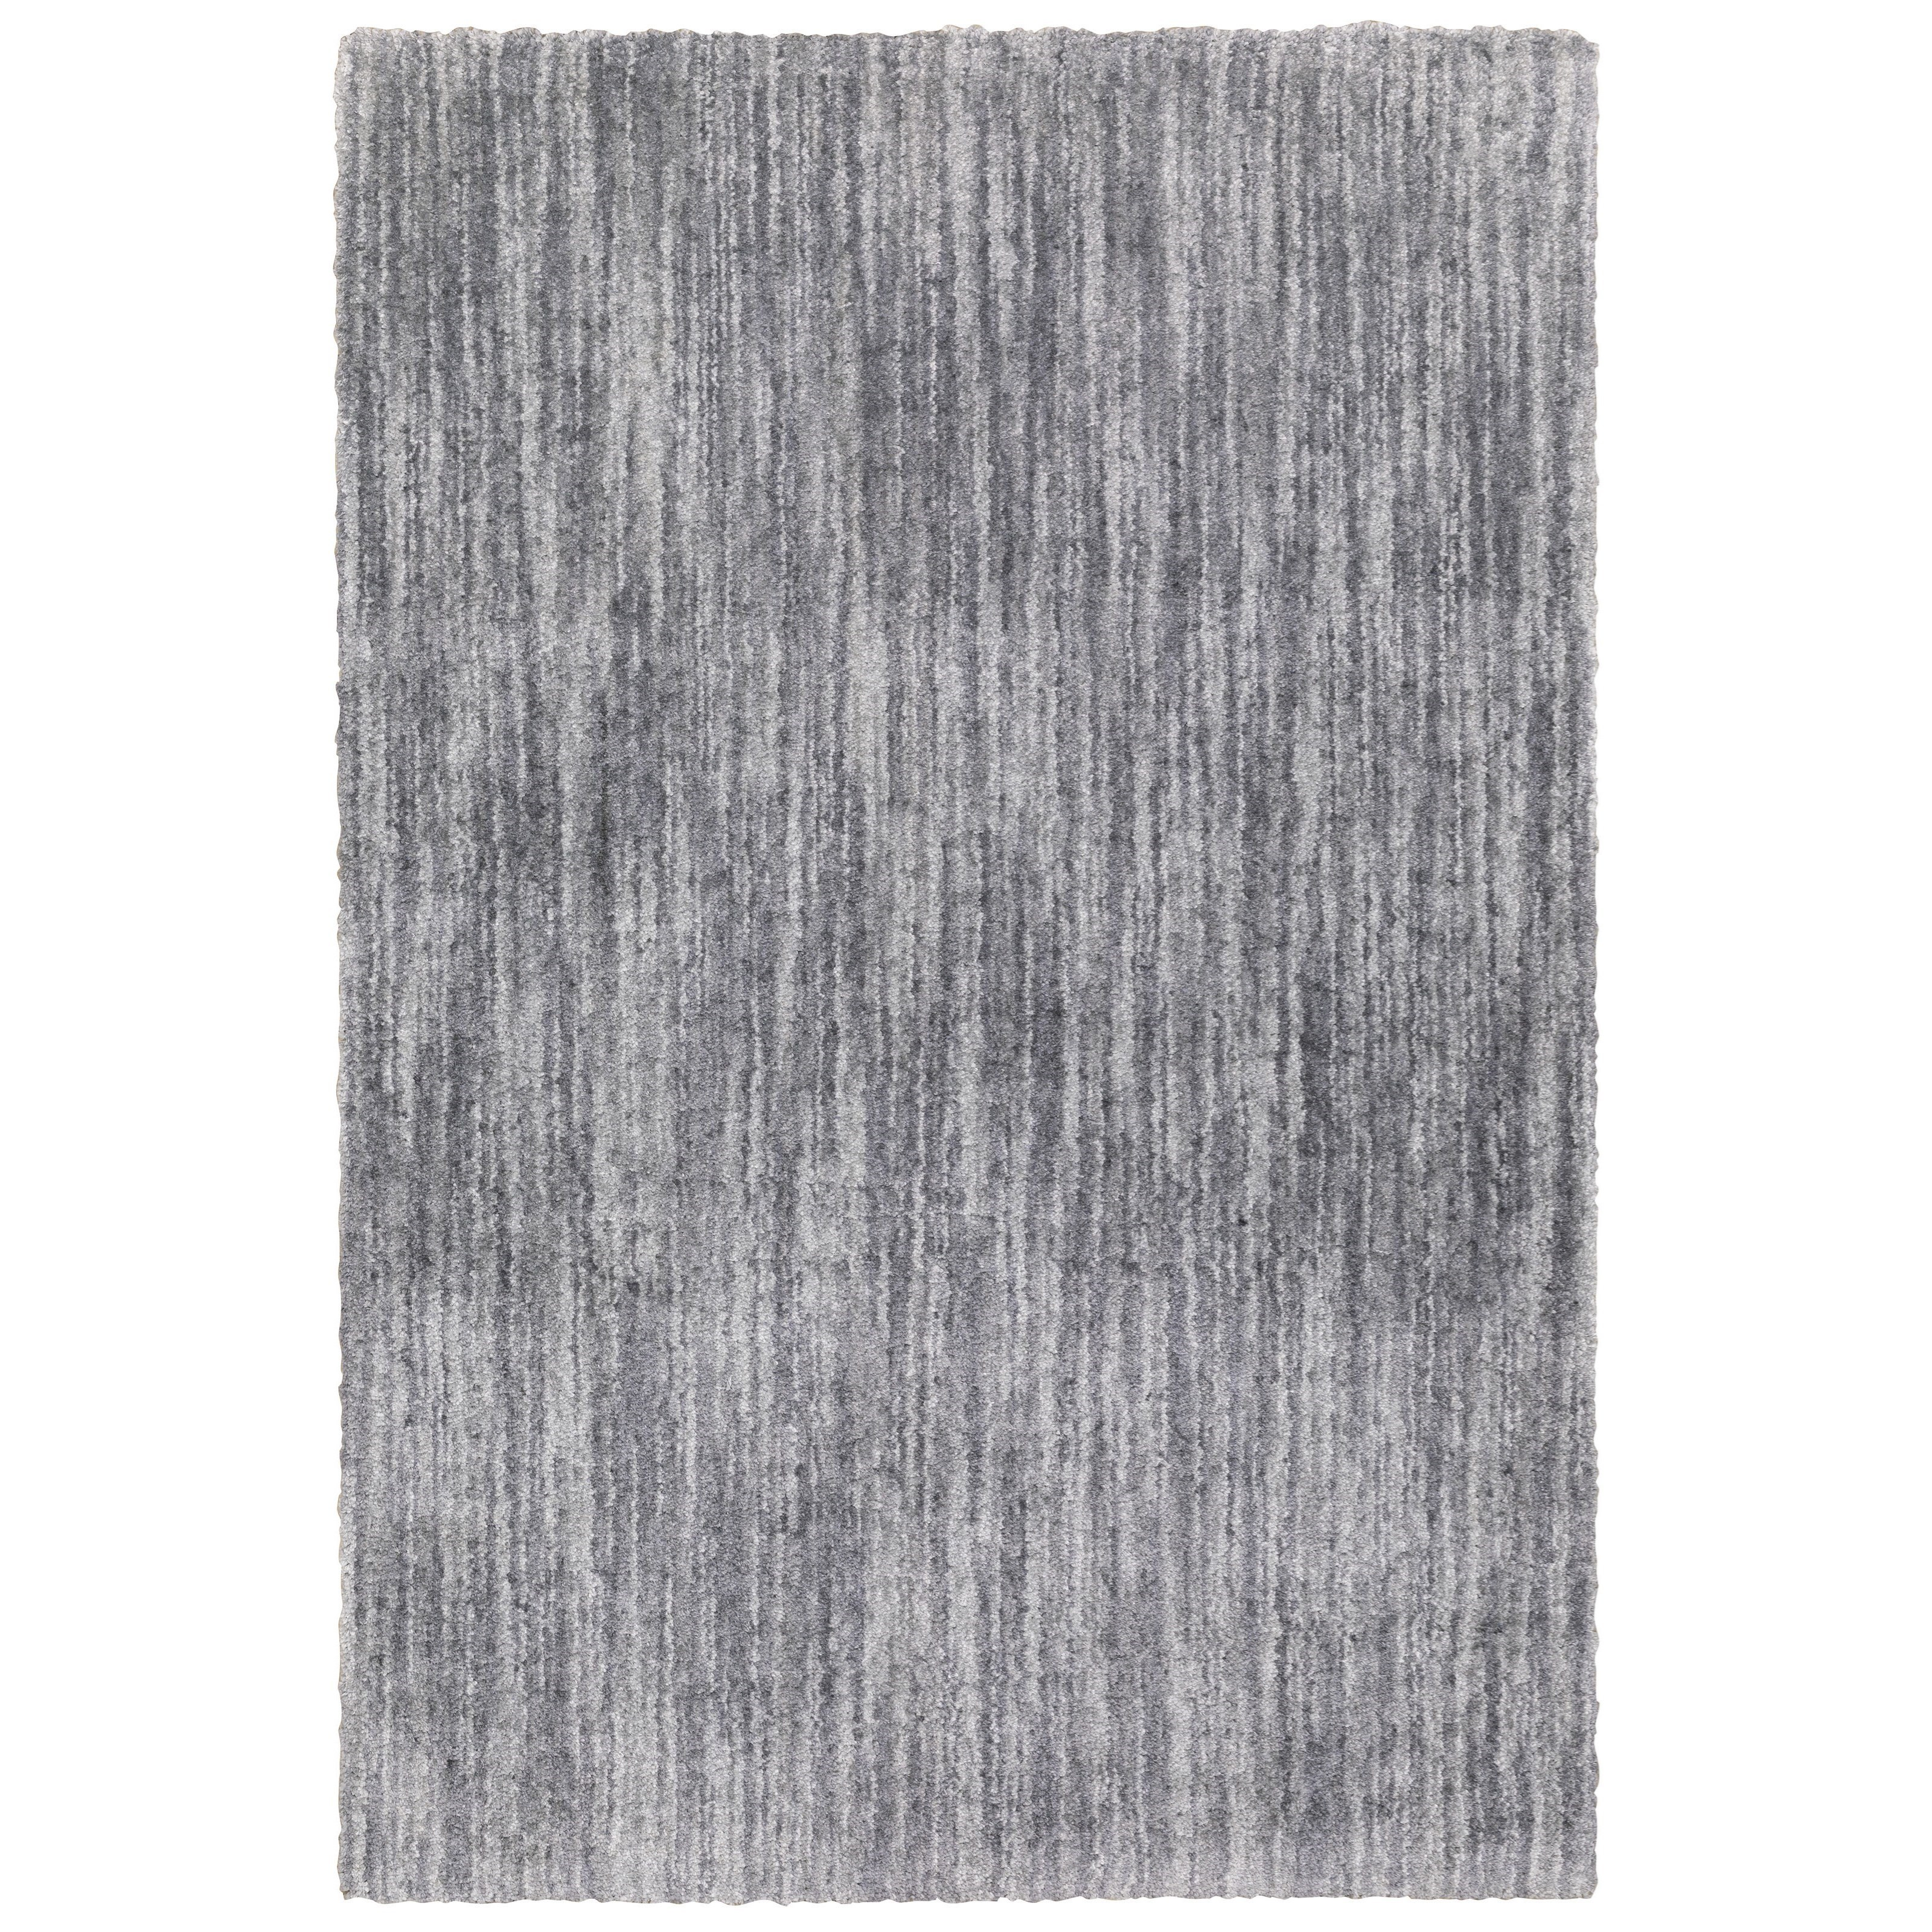 "ASPEN 6' 7"" X  9' 6"" Rectangle Rug by Oriental Weavers at Darvin Furniture"